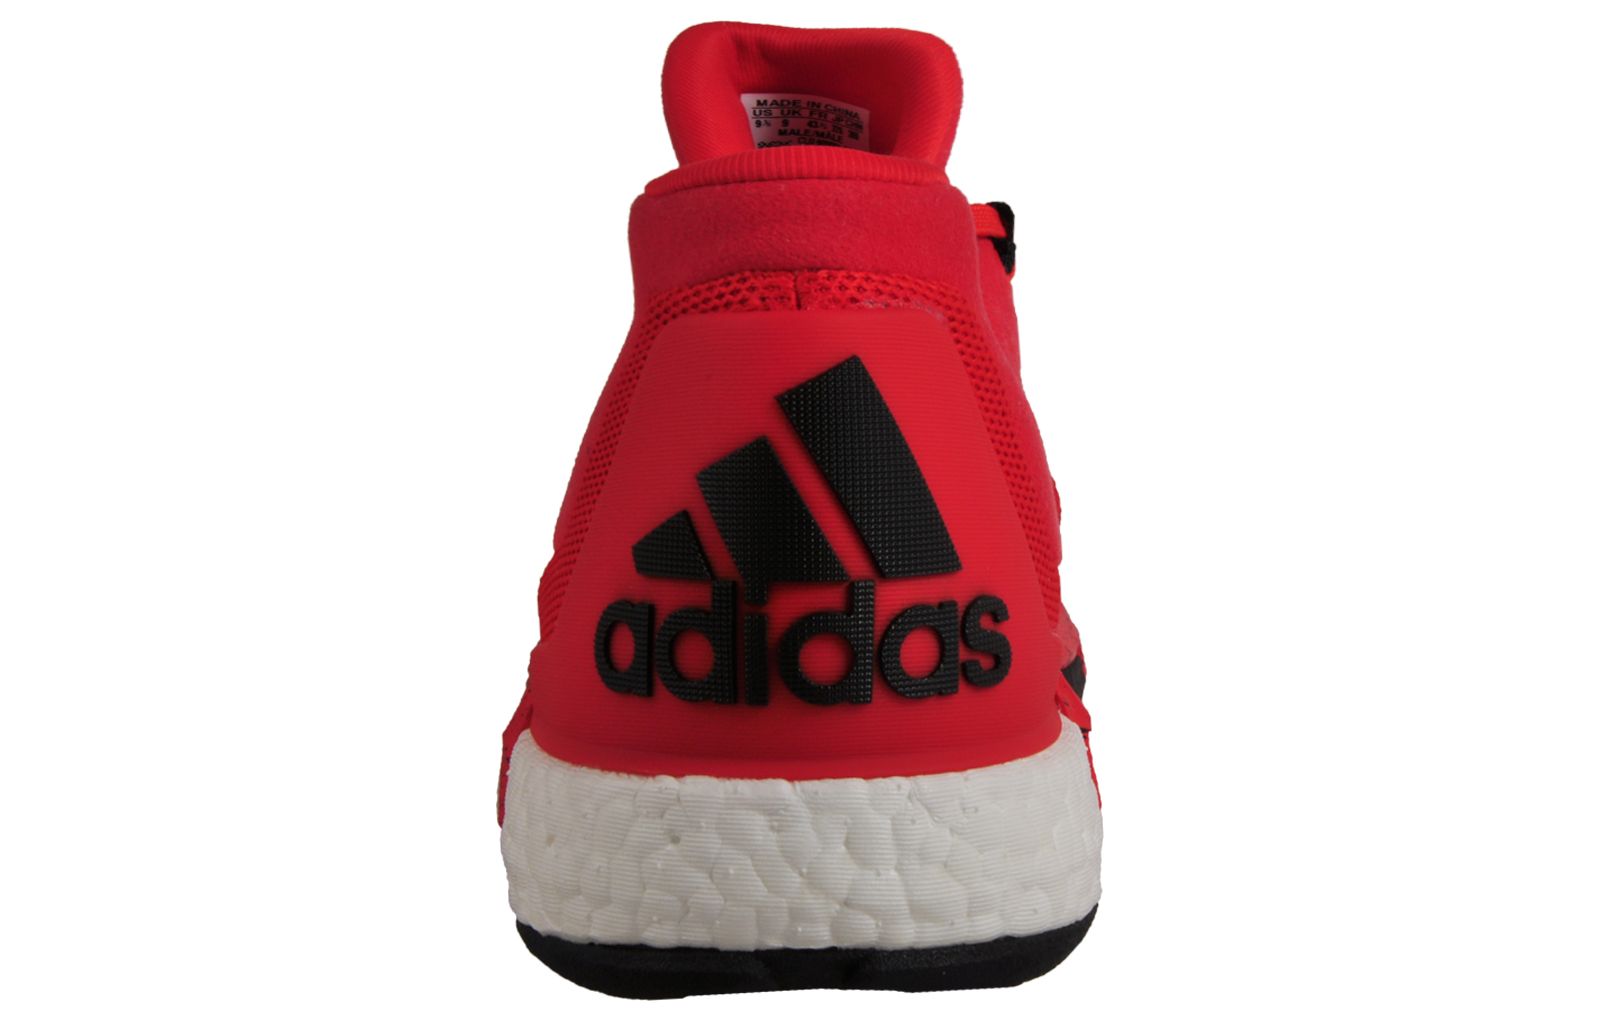 54c6207661c4 ... sweden adidas crazylight boost primeknit premium fitness basketball  shoes trainers red 2e337 7ba12